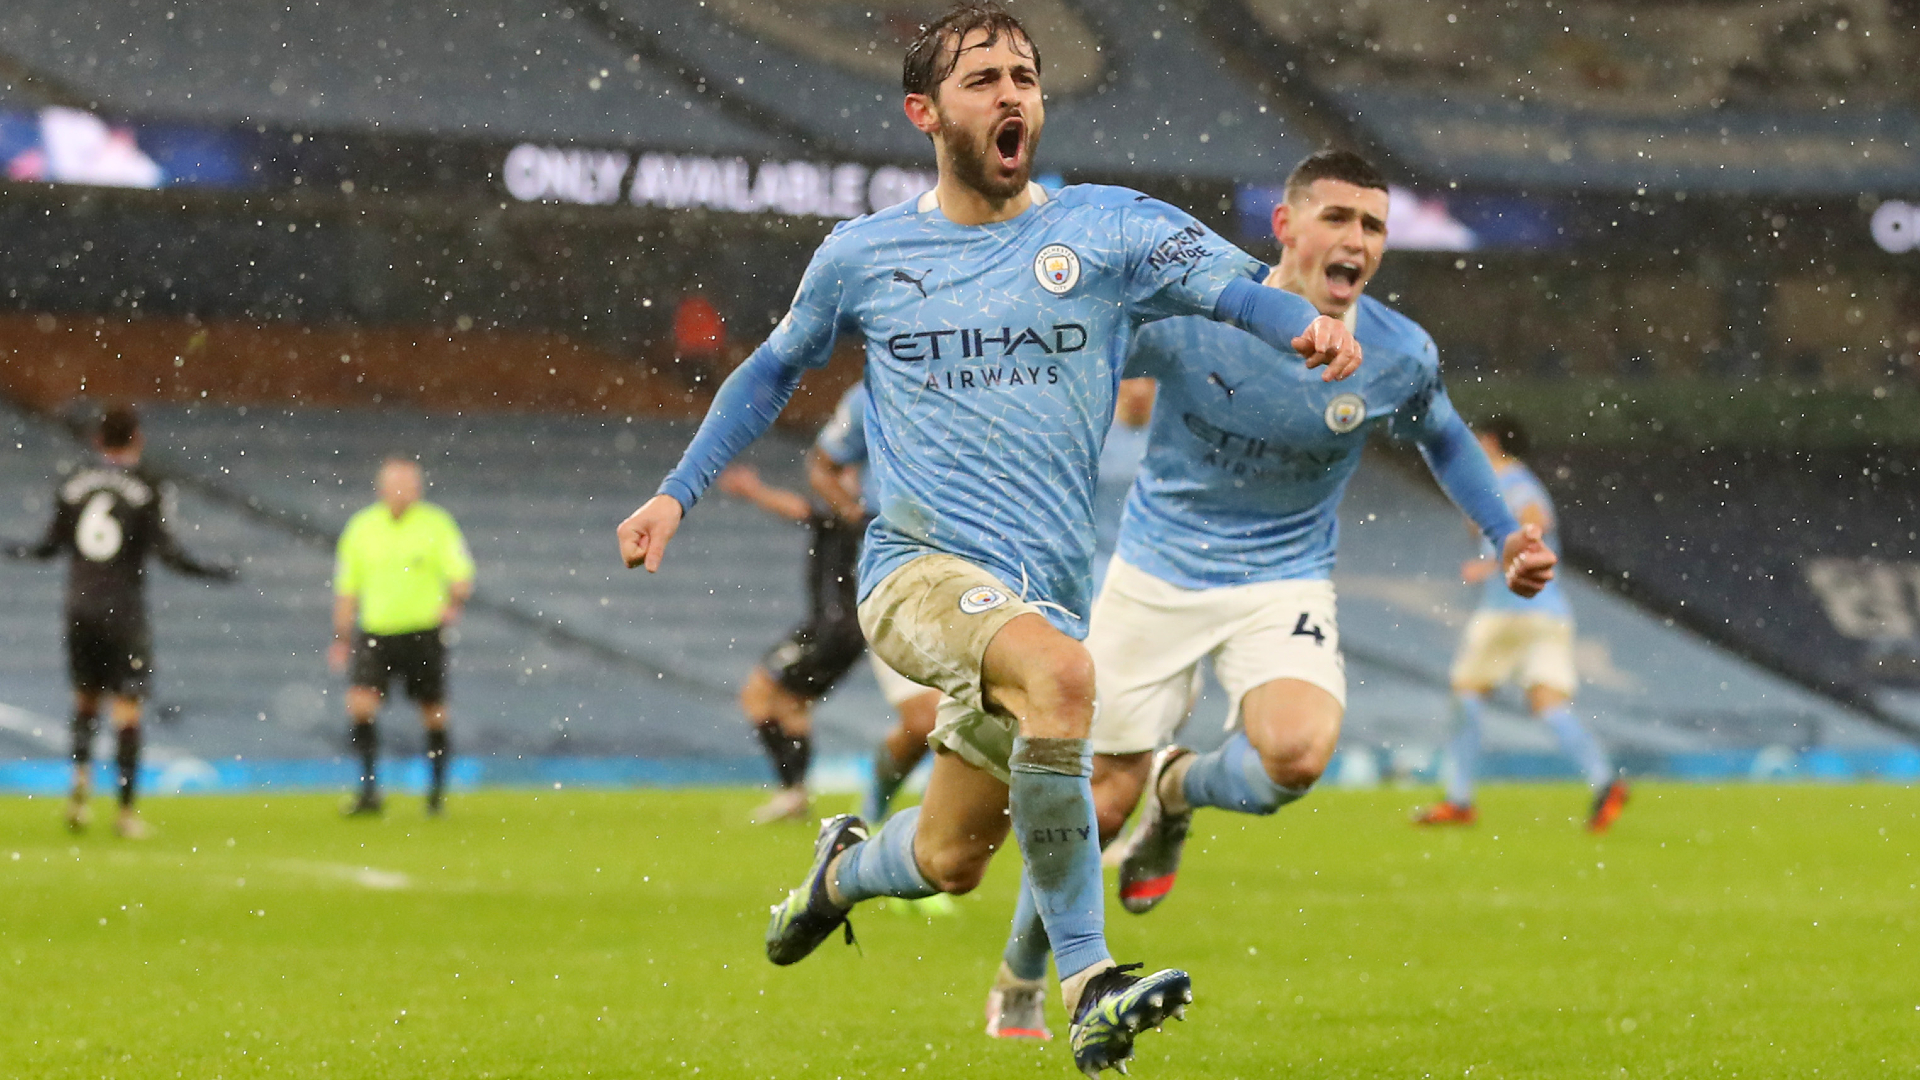 Bernardo Silva relieved to end Premier League goal drought as City roll on